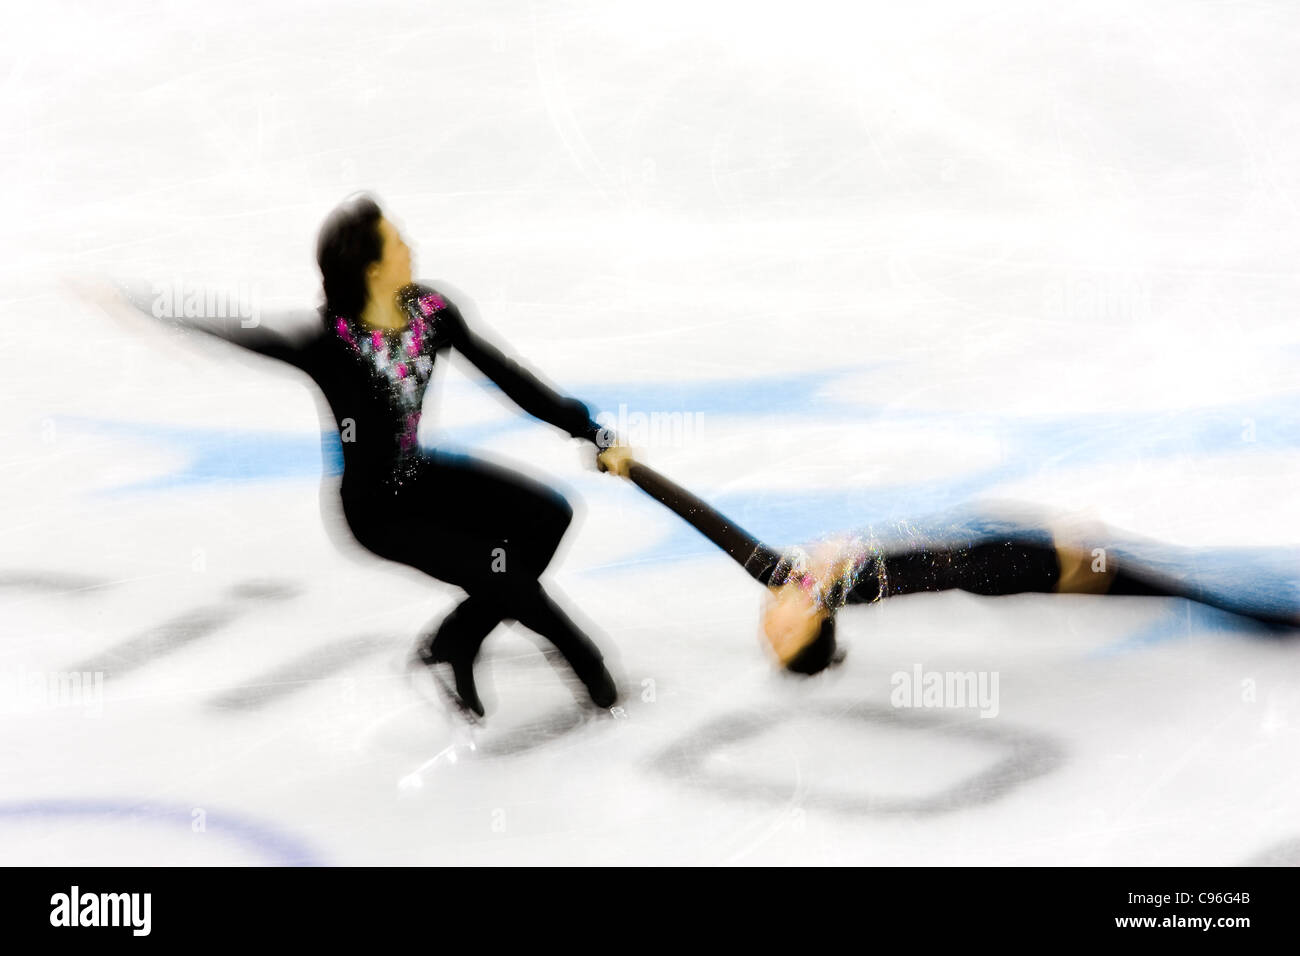 Blurred action of pairs figure skaters. - Stock Image